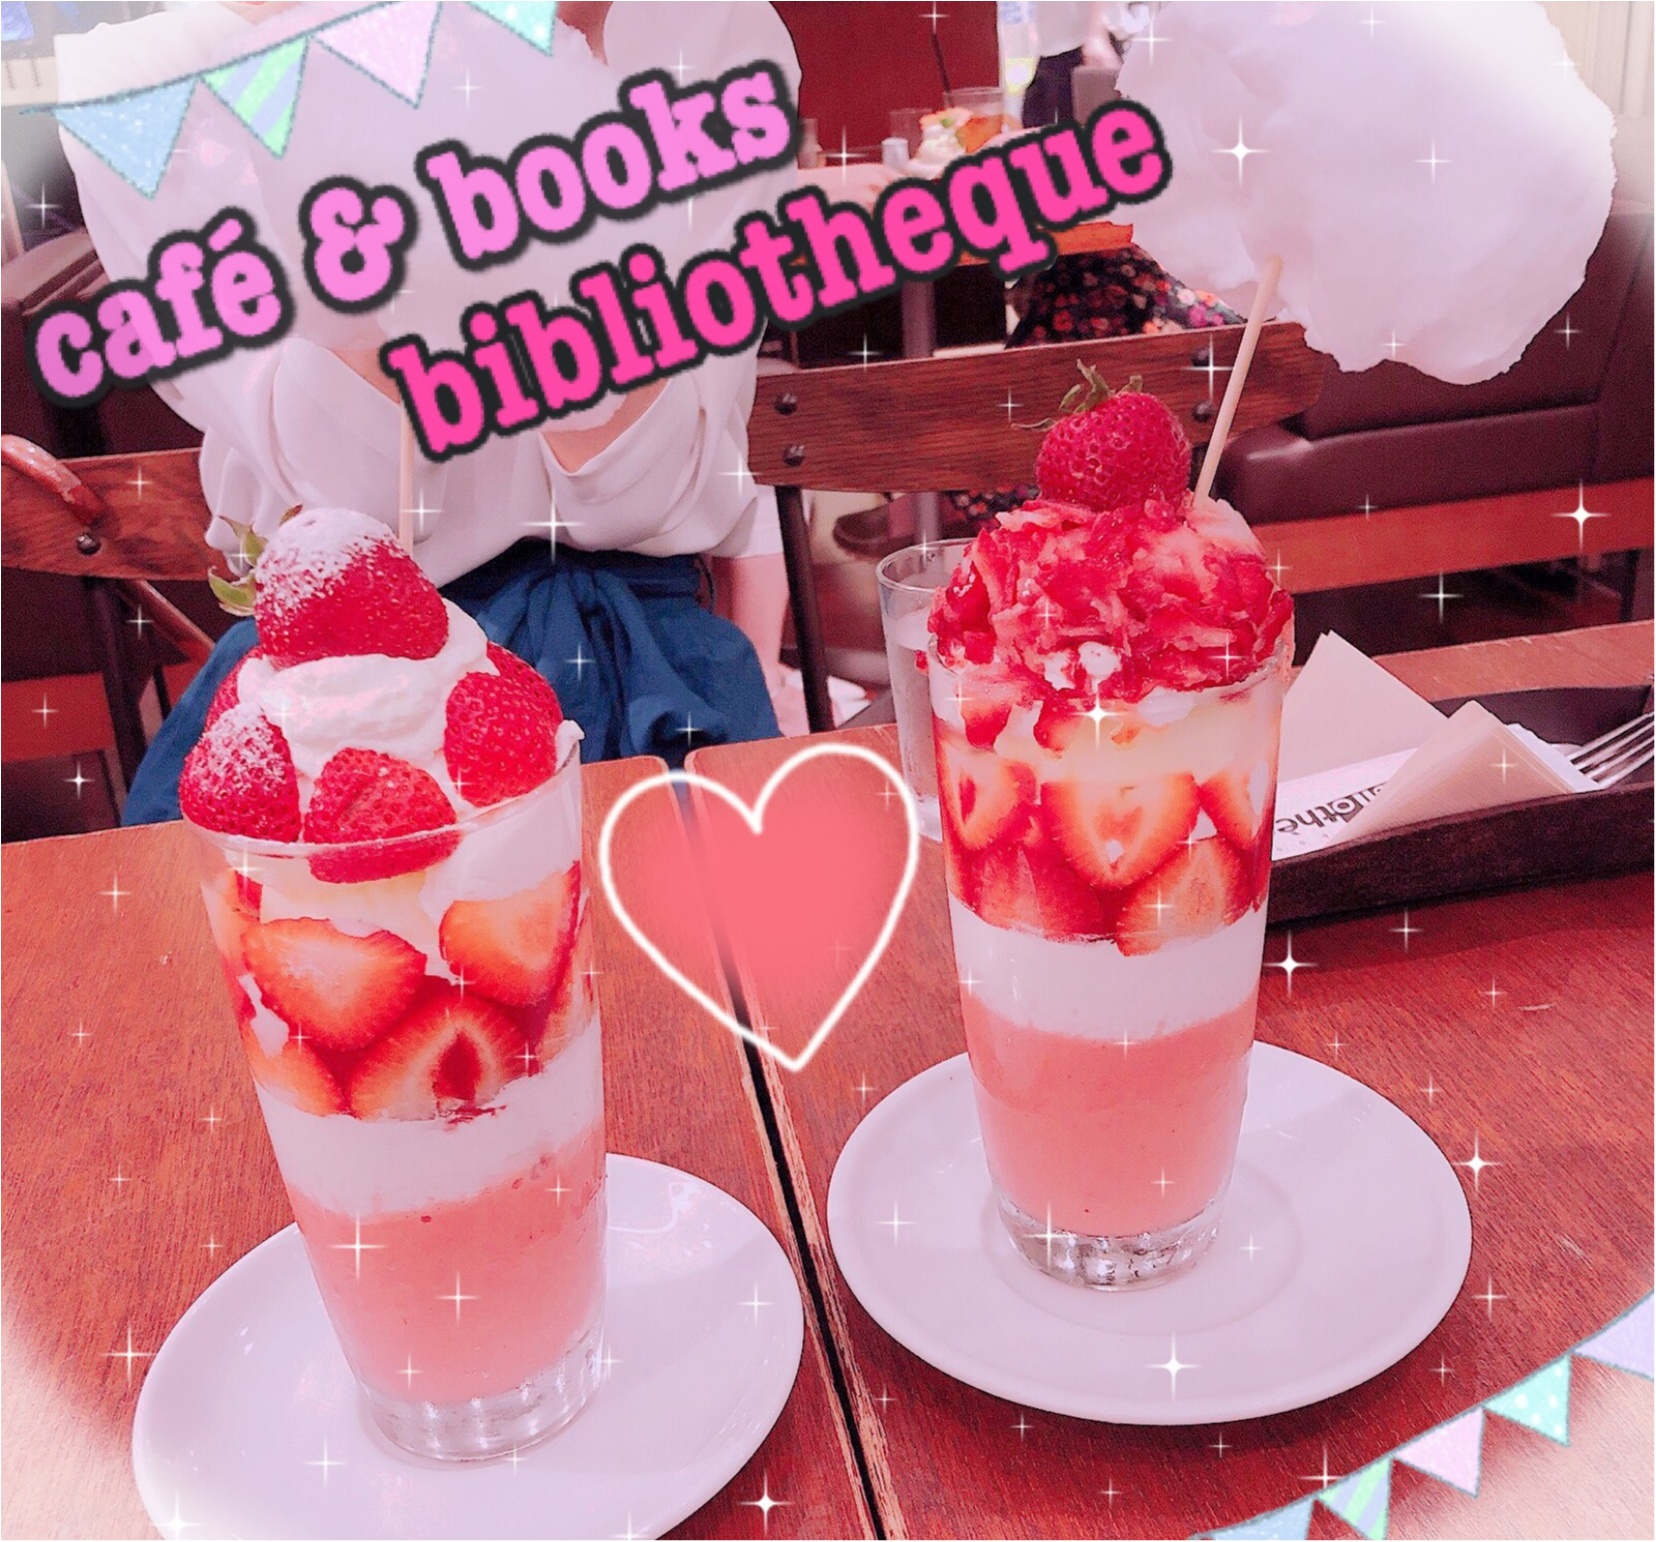 café & books bibliotheque フローズンフルーツフェア♡_1